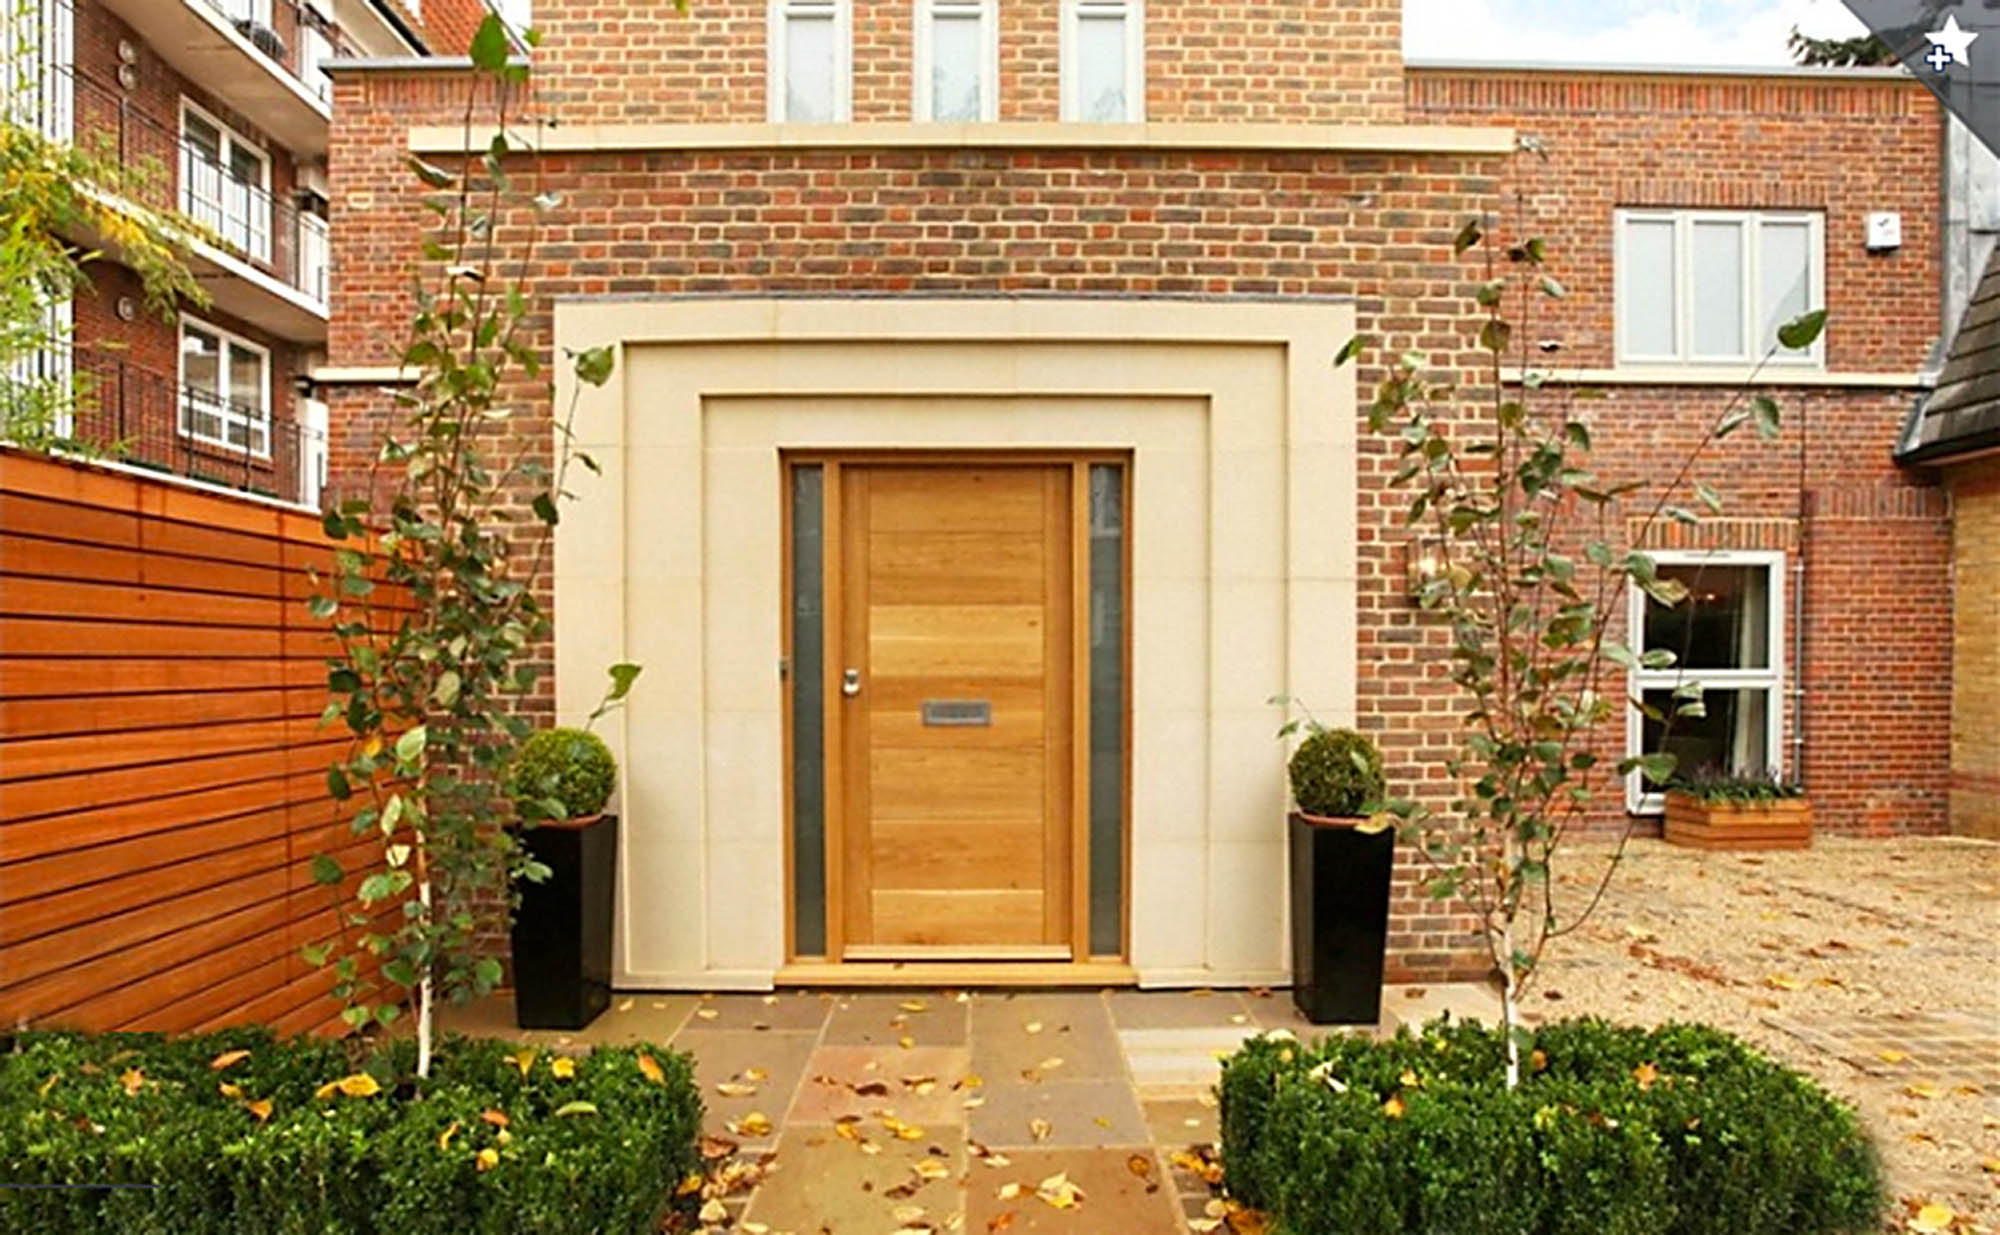 Art deco entrance and exterior of Putney renovation project